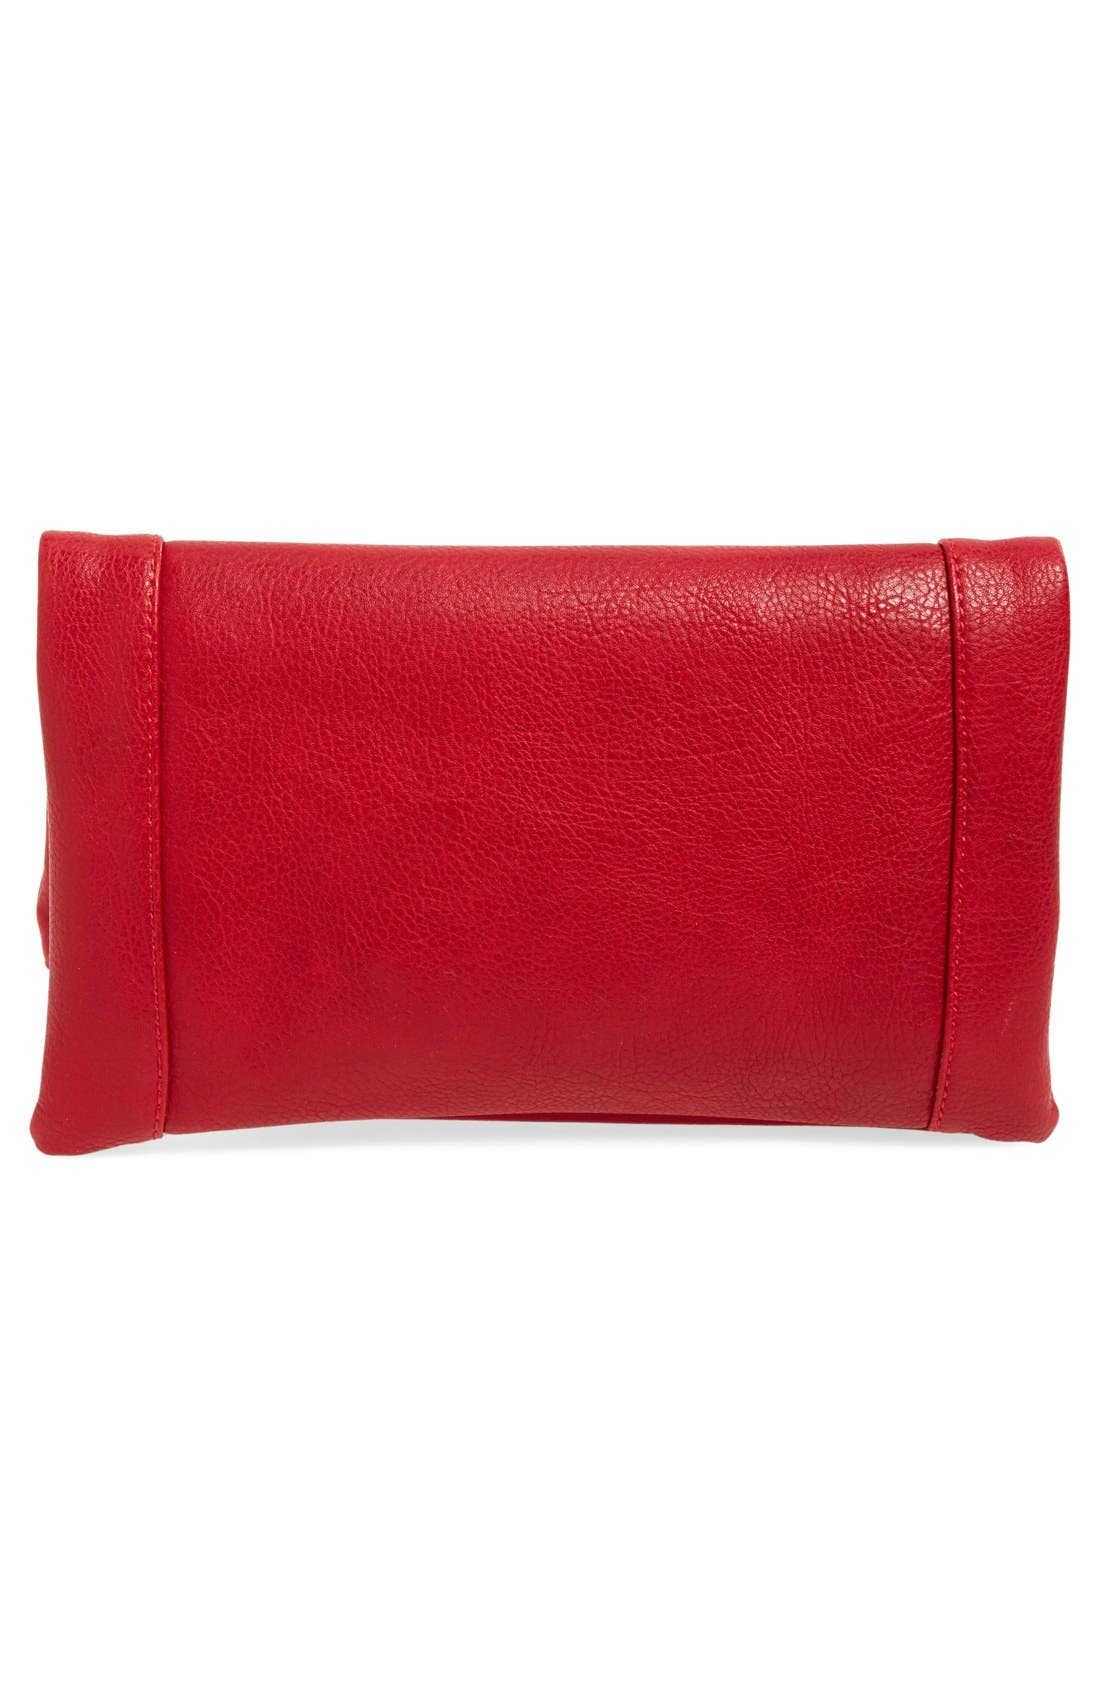 ,                             Marlena Faux Leather Foldover Clutch,                             Alternate thumbnail 73, color,                             600